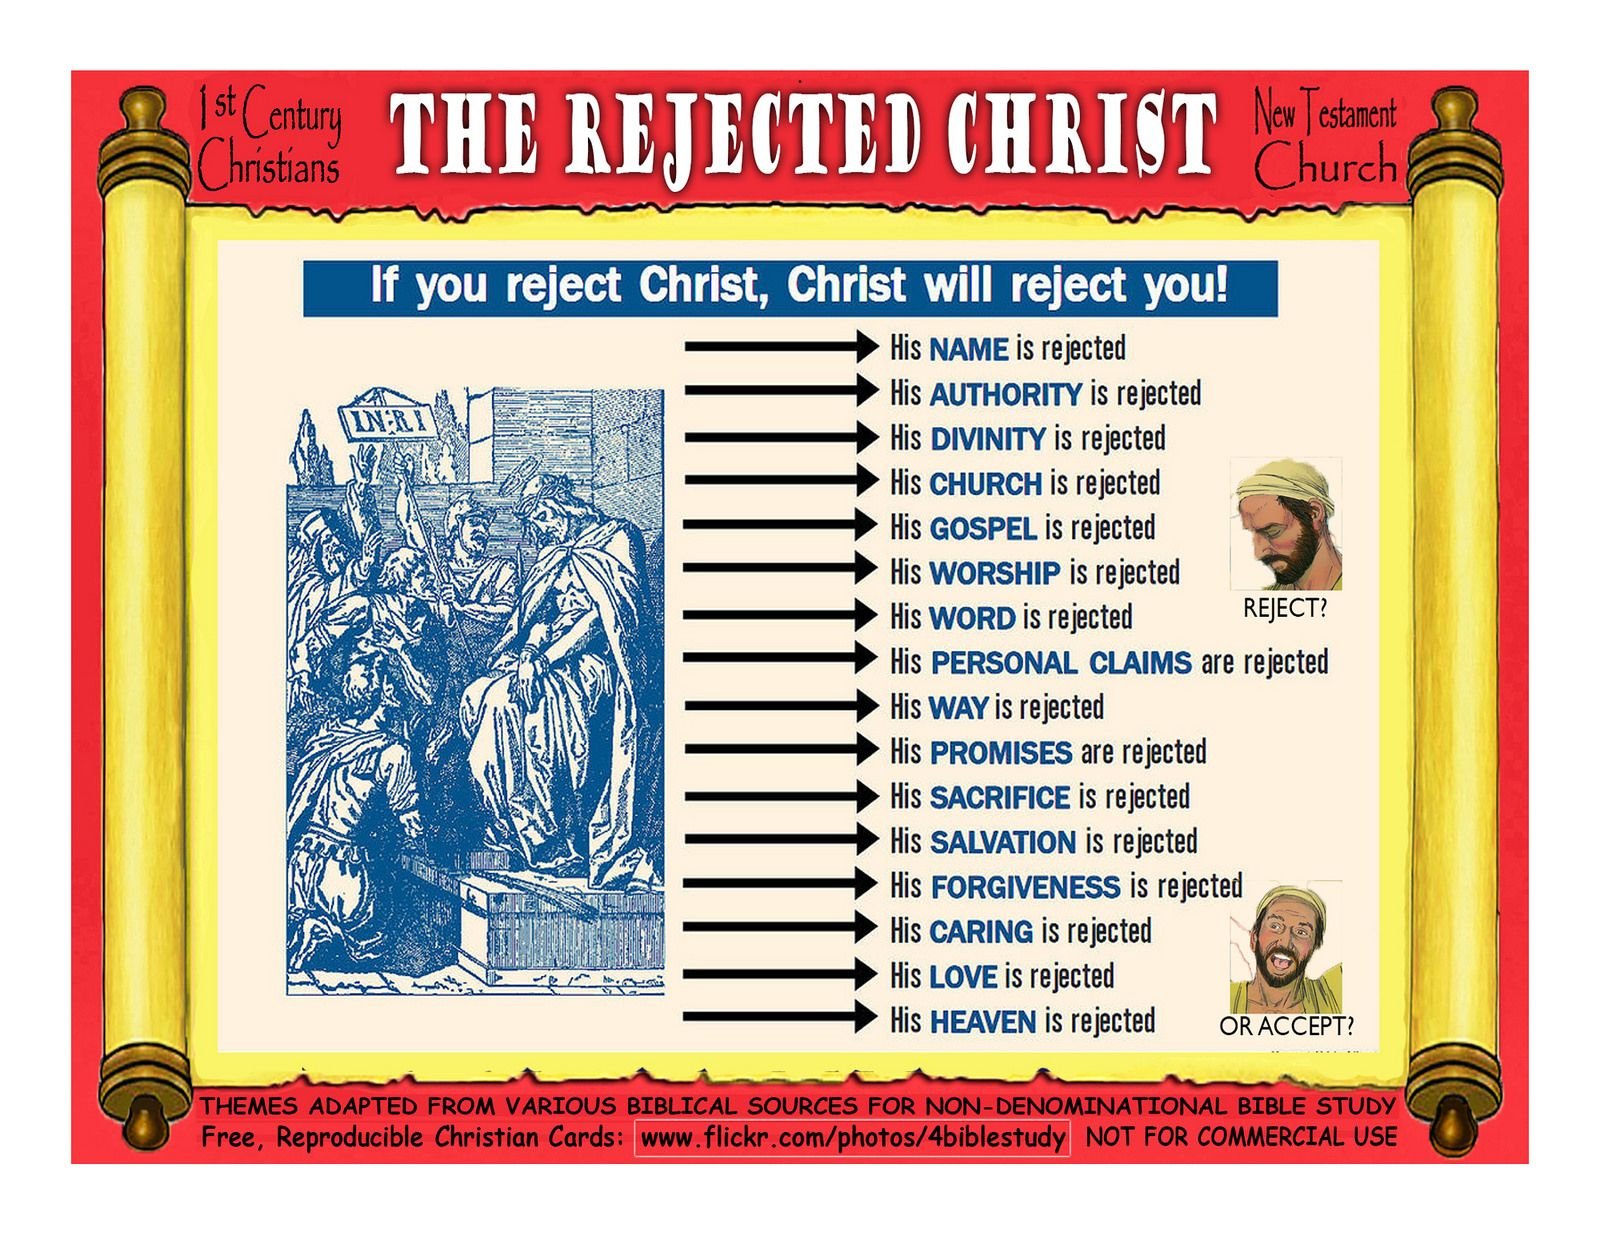 The Rejected Christ -1st Century Christianity - New